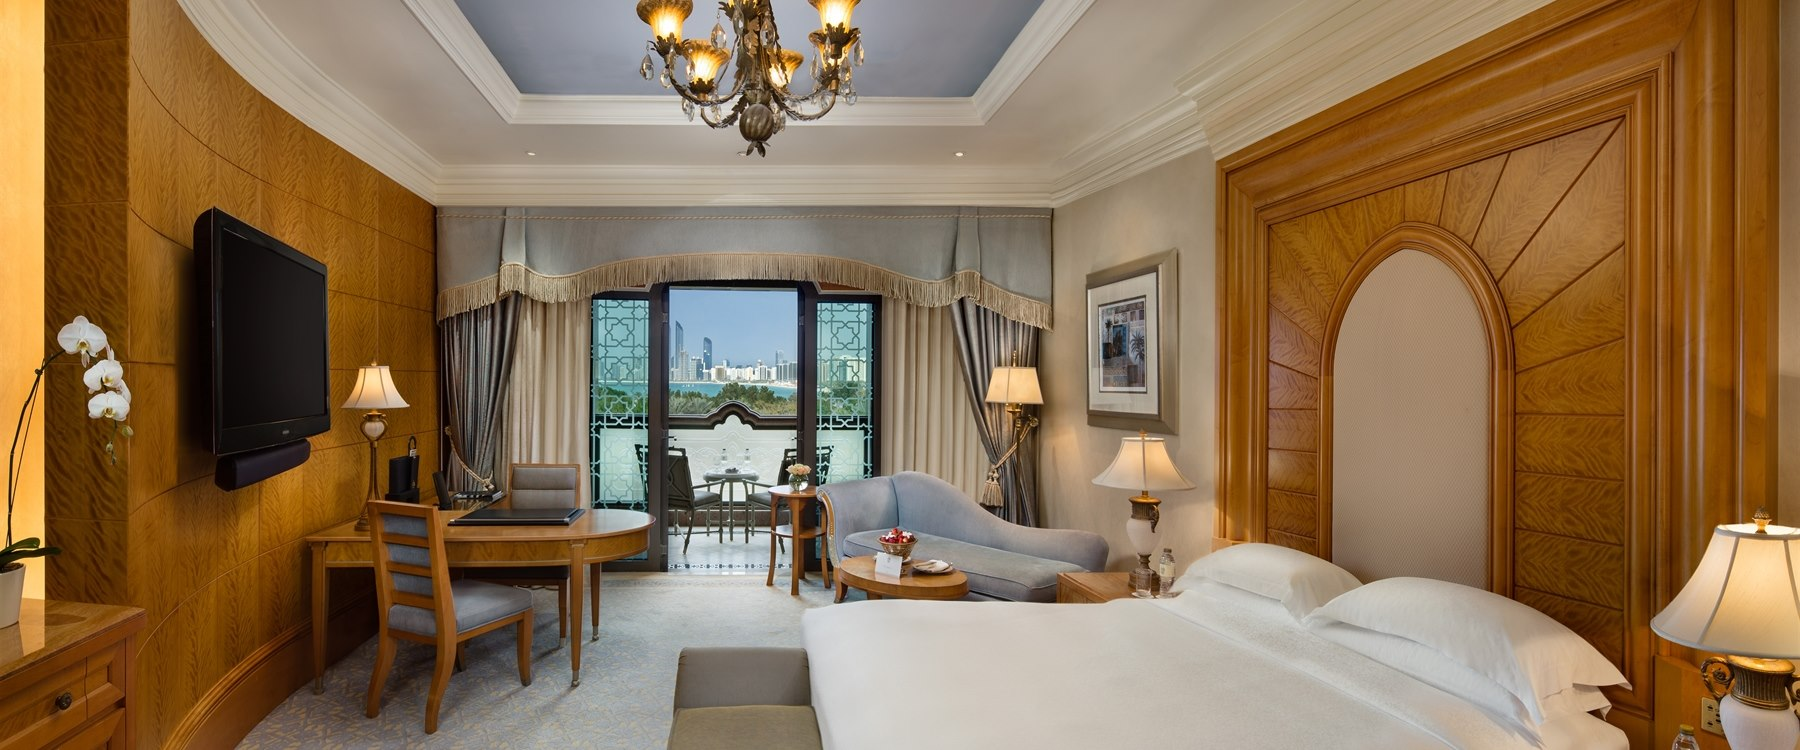 King Room at Emirates Palace, Abu Dhabi